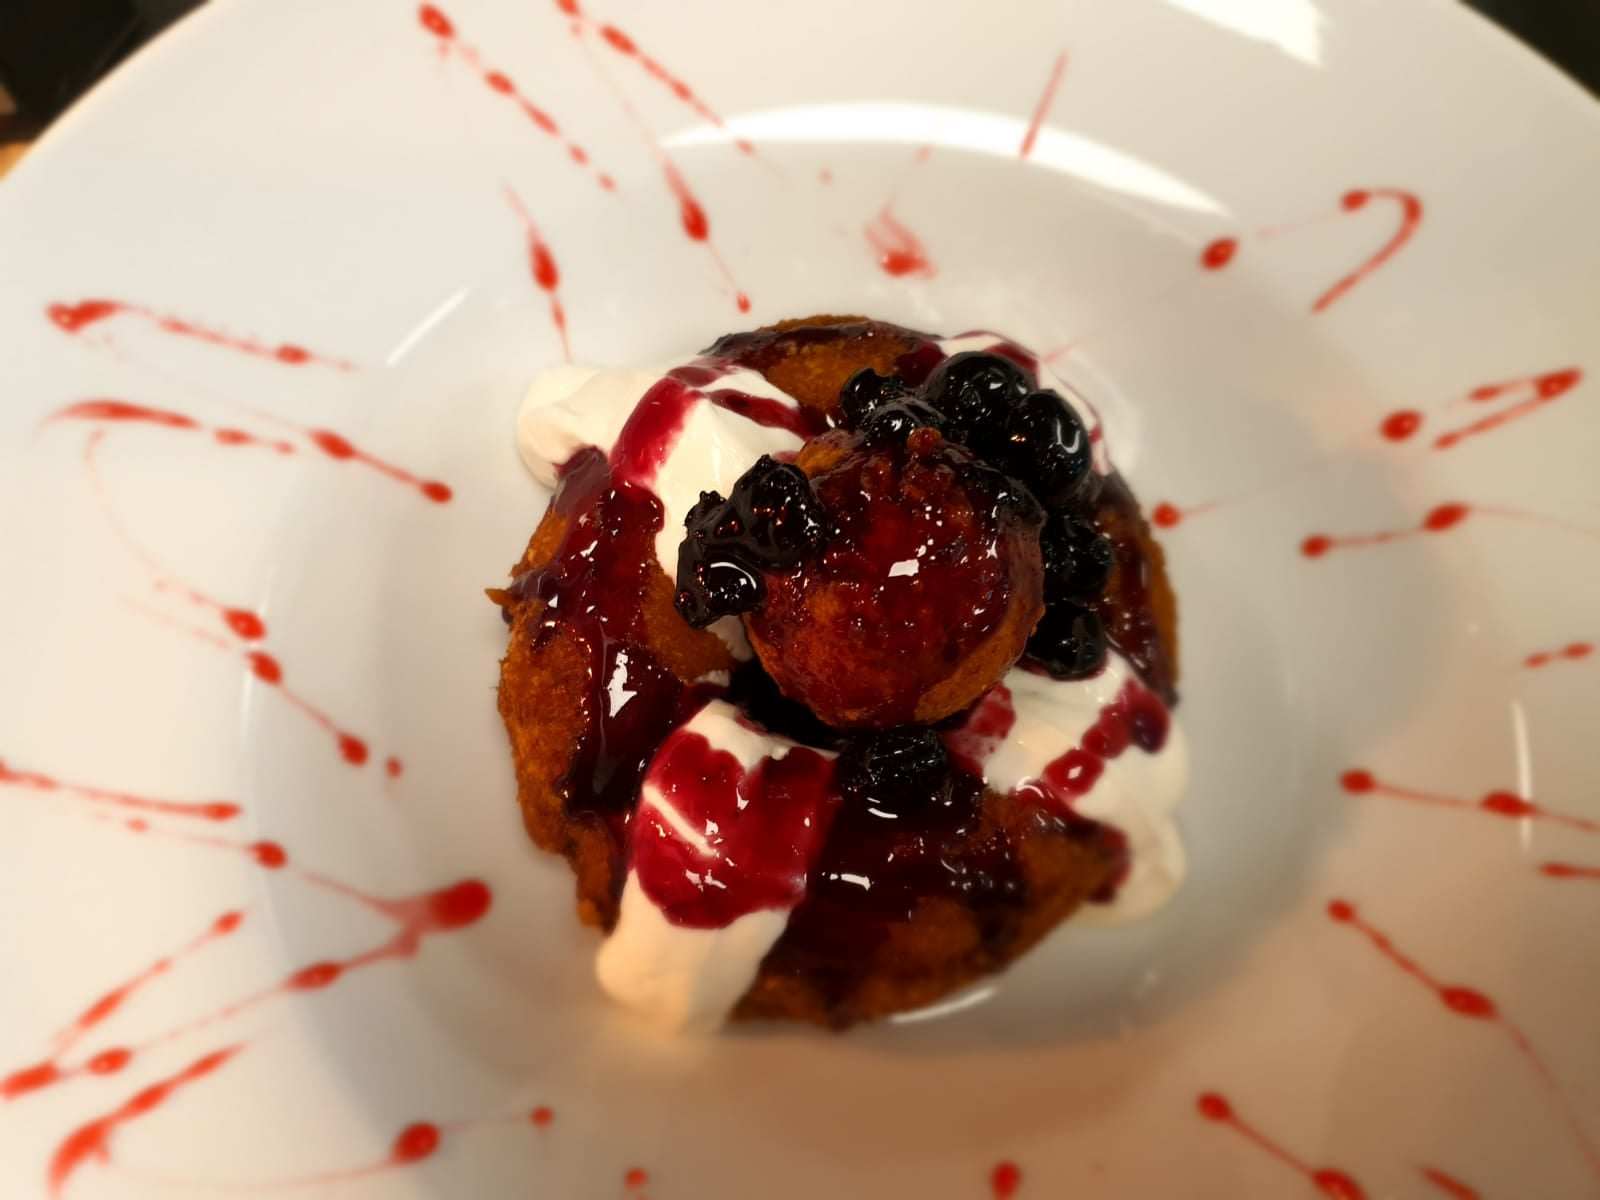 A dessert at Grill Hunters on Lord Street in Southport. Doughnut with sour cream and cherries